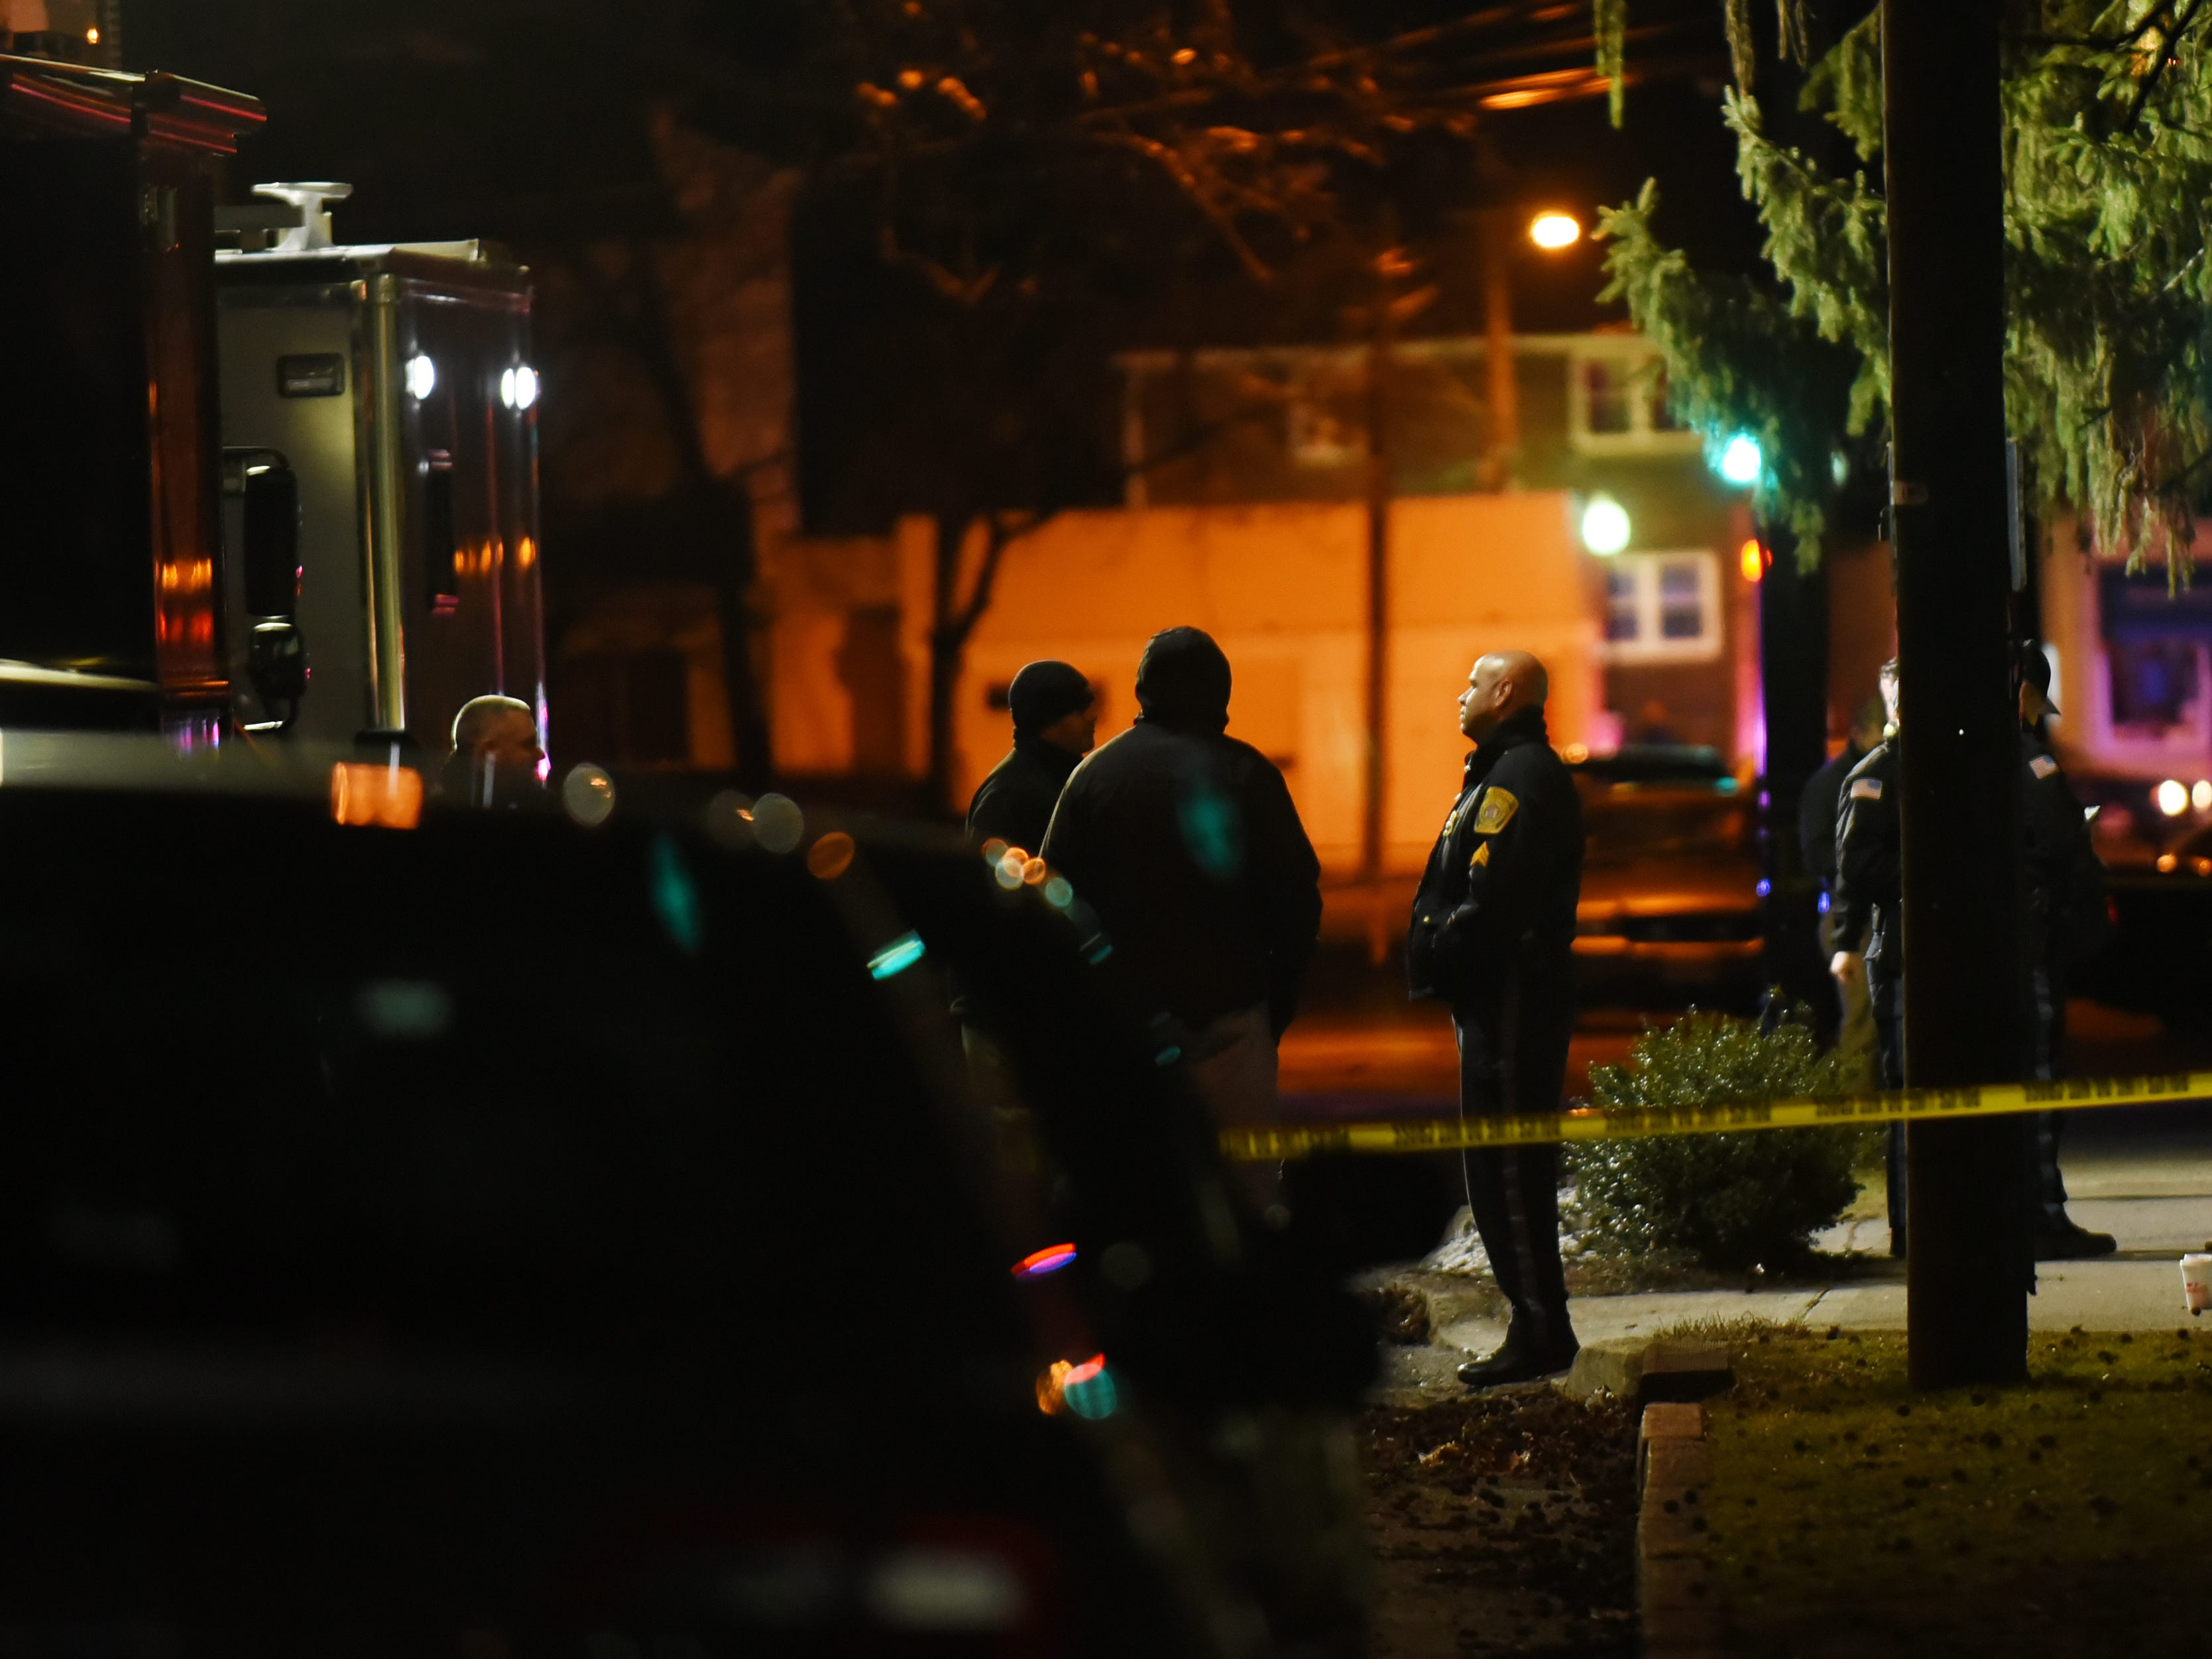 Law enforcement at the scene of a double homicide in Englewood on Saturday February 16, 2019.